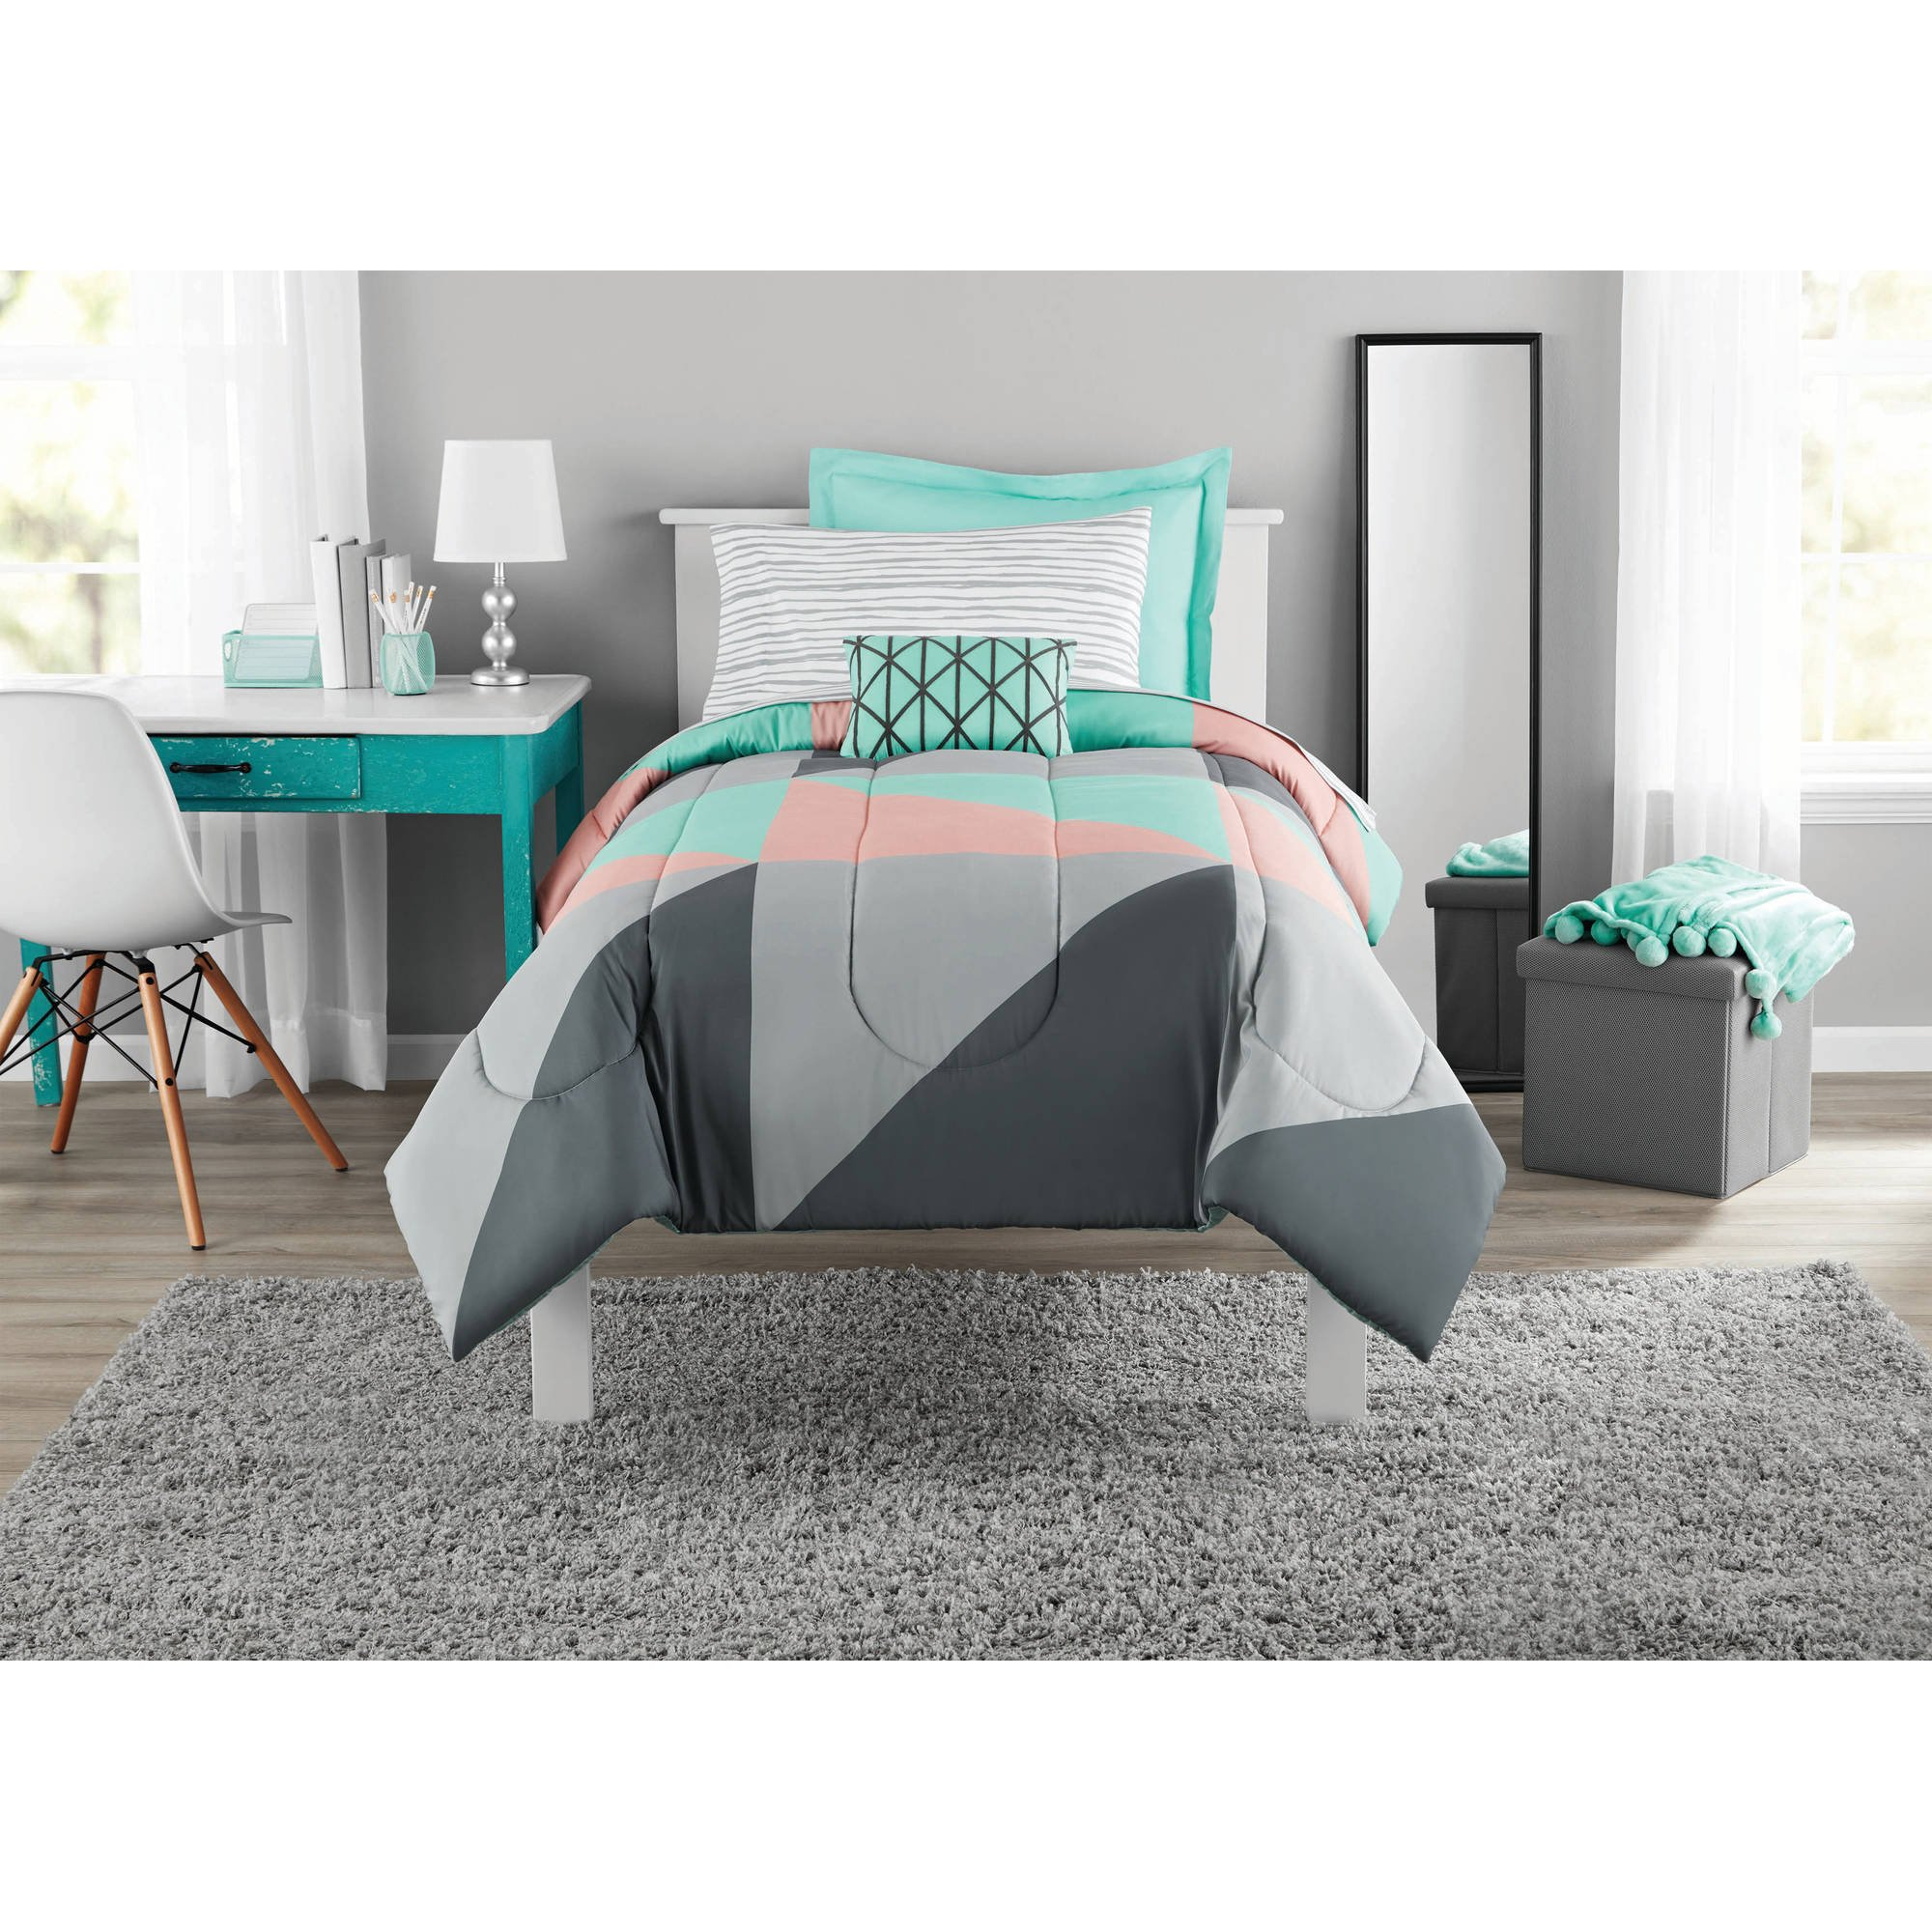 Fun and Bold Mainstays Gray and Teal Bed in a Bag Modern Comforter Set, Geometric Triangle Print with Teal Blue Gray and Pink Coral, Great for Dorms and Kid's Rooms! (Twin/Twin XL)